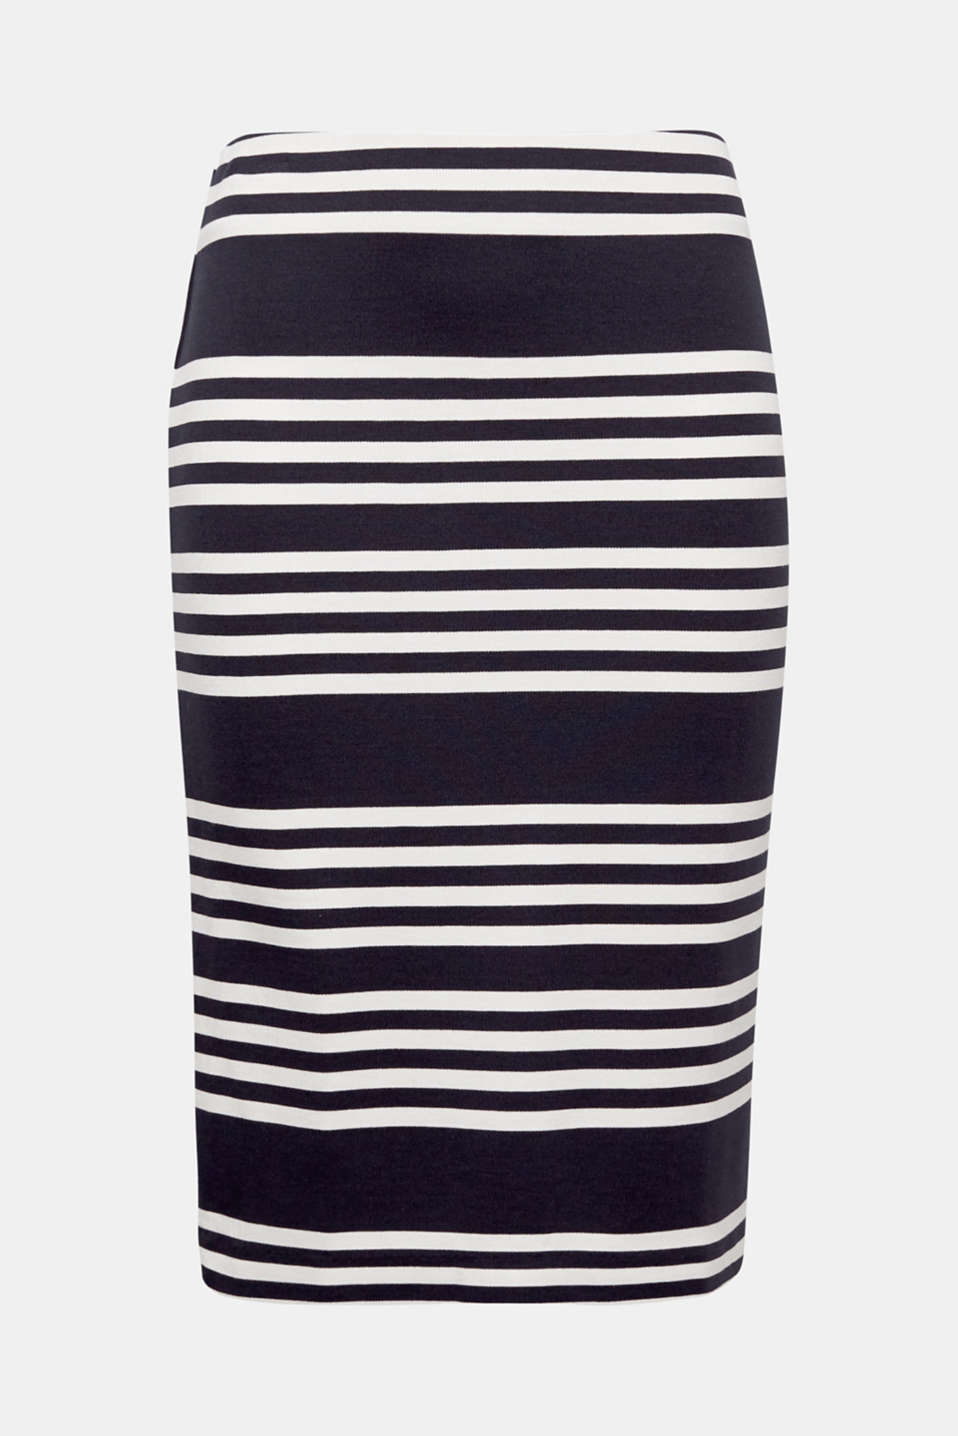 This nautical striped pencil skirt in compact stretch jersey creates a feminine look and is extremely comfortable.